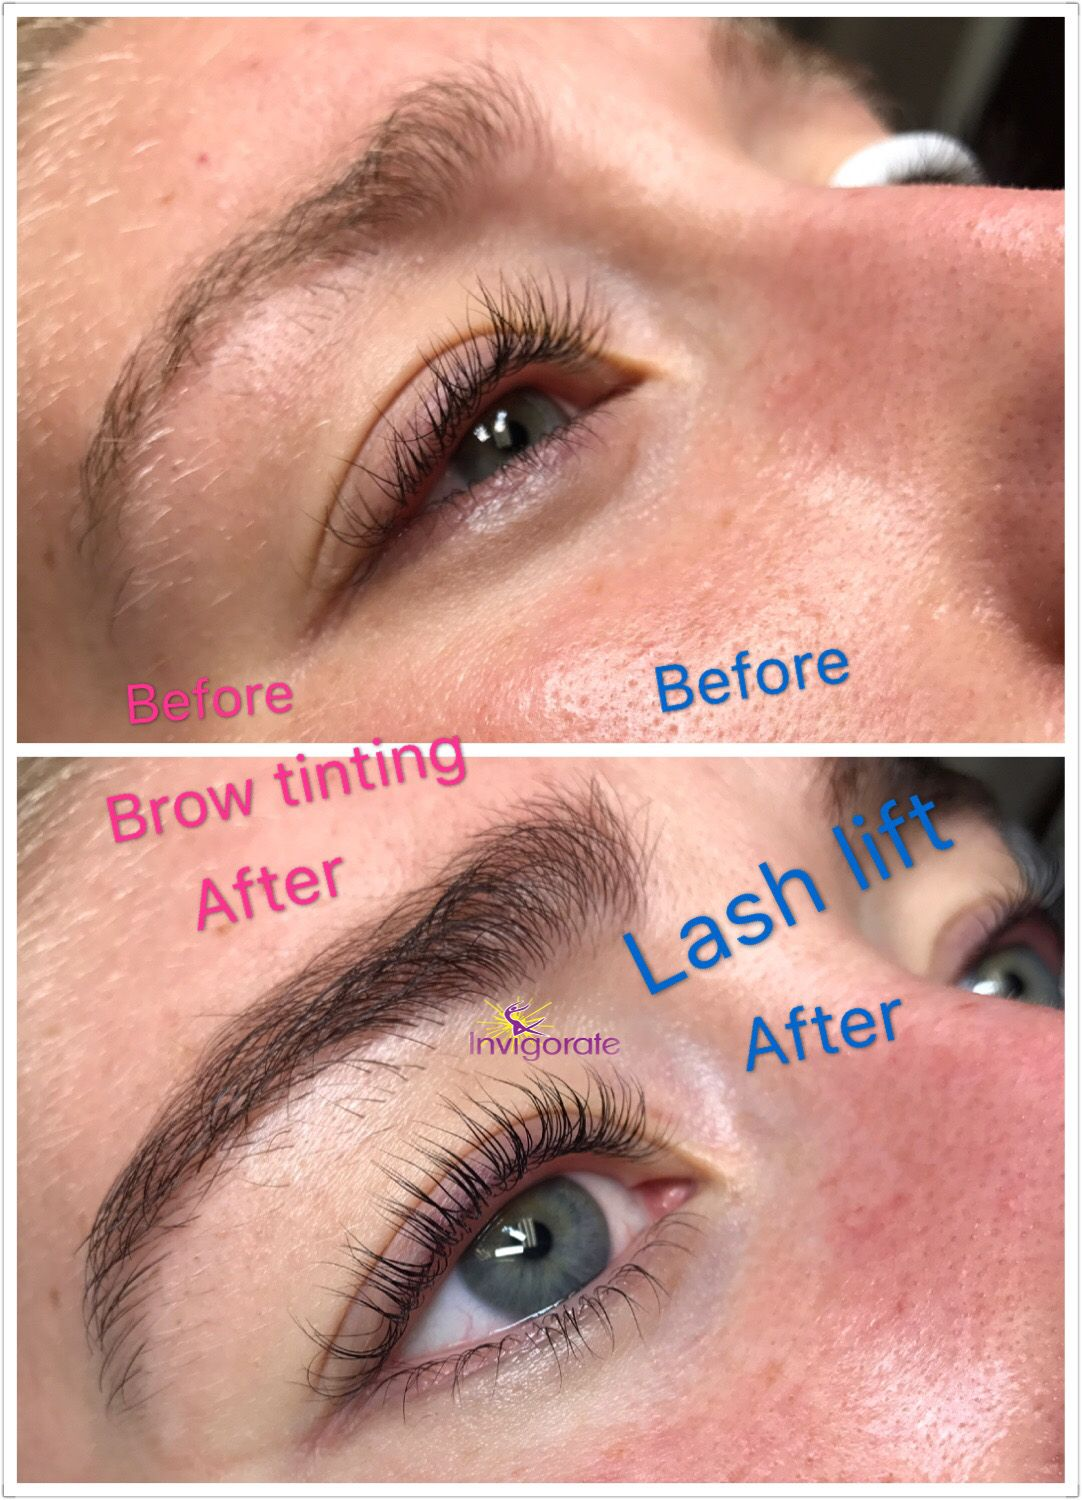 Instant Gorgeous New Look With The Help Of Brow Tinting Lash